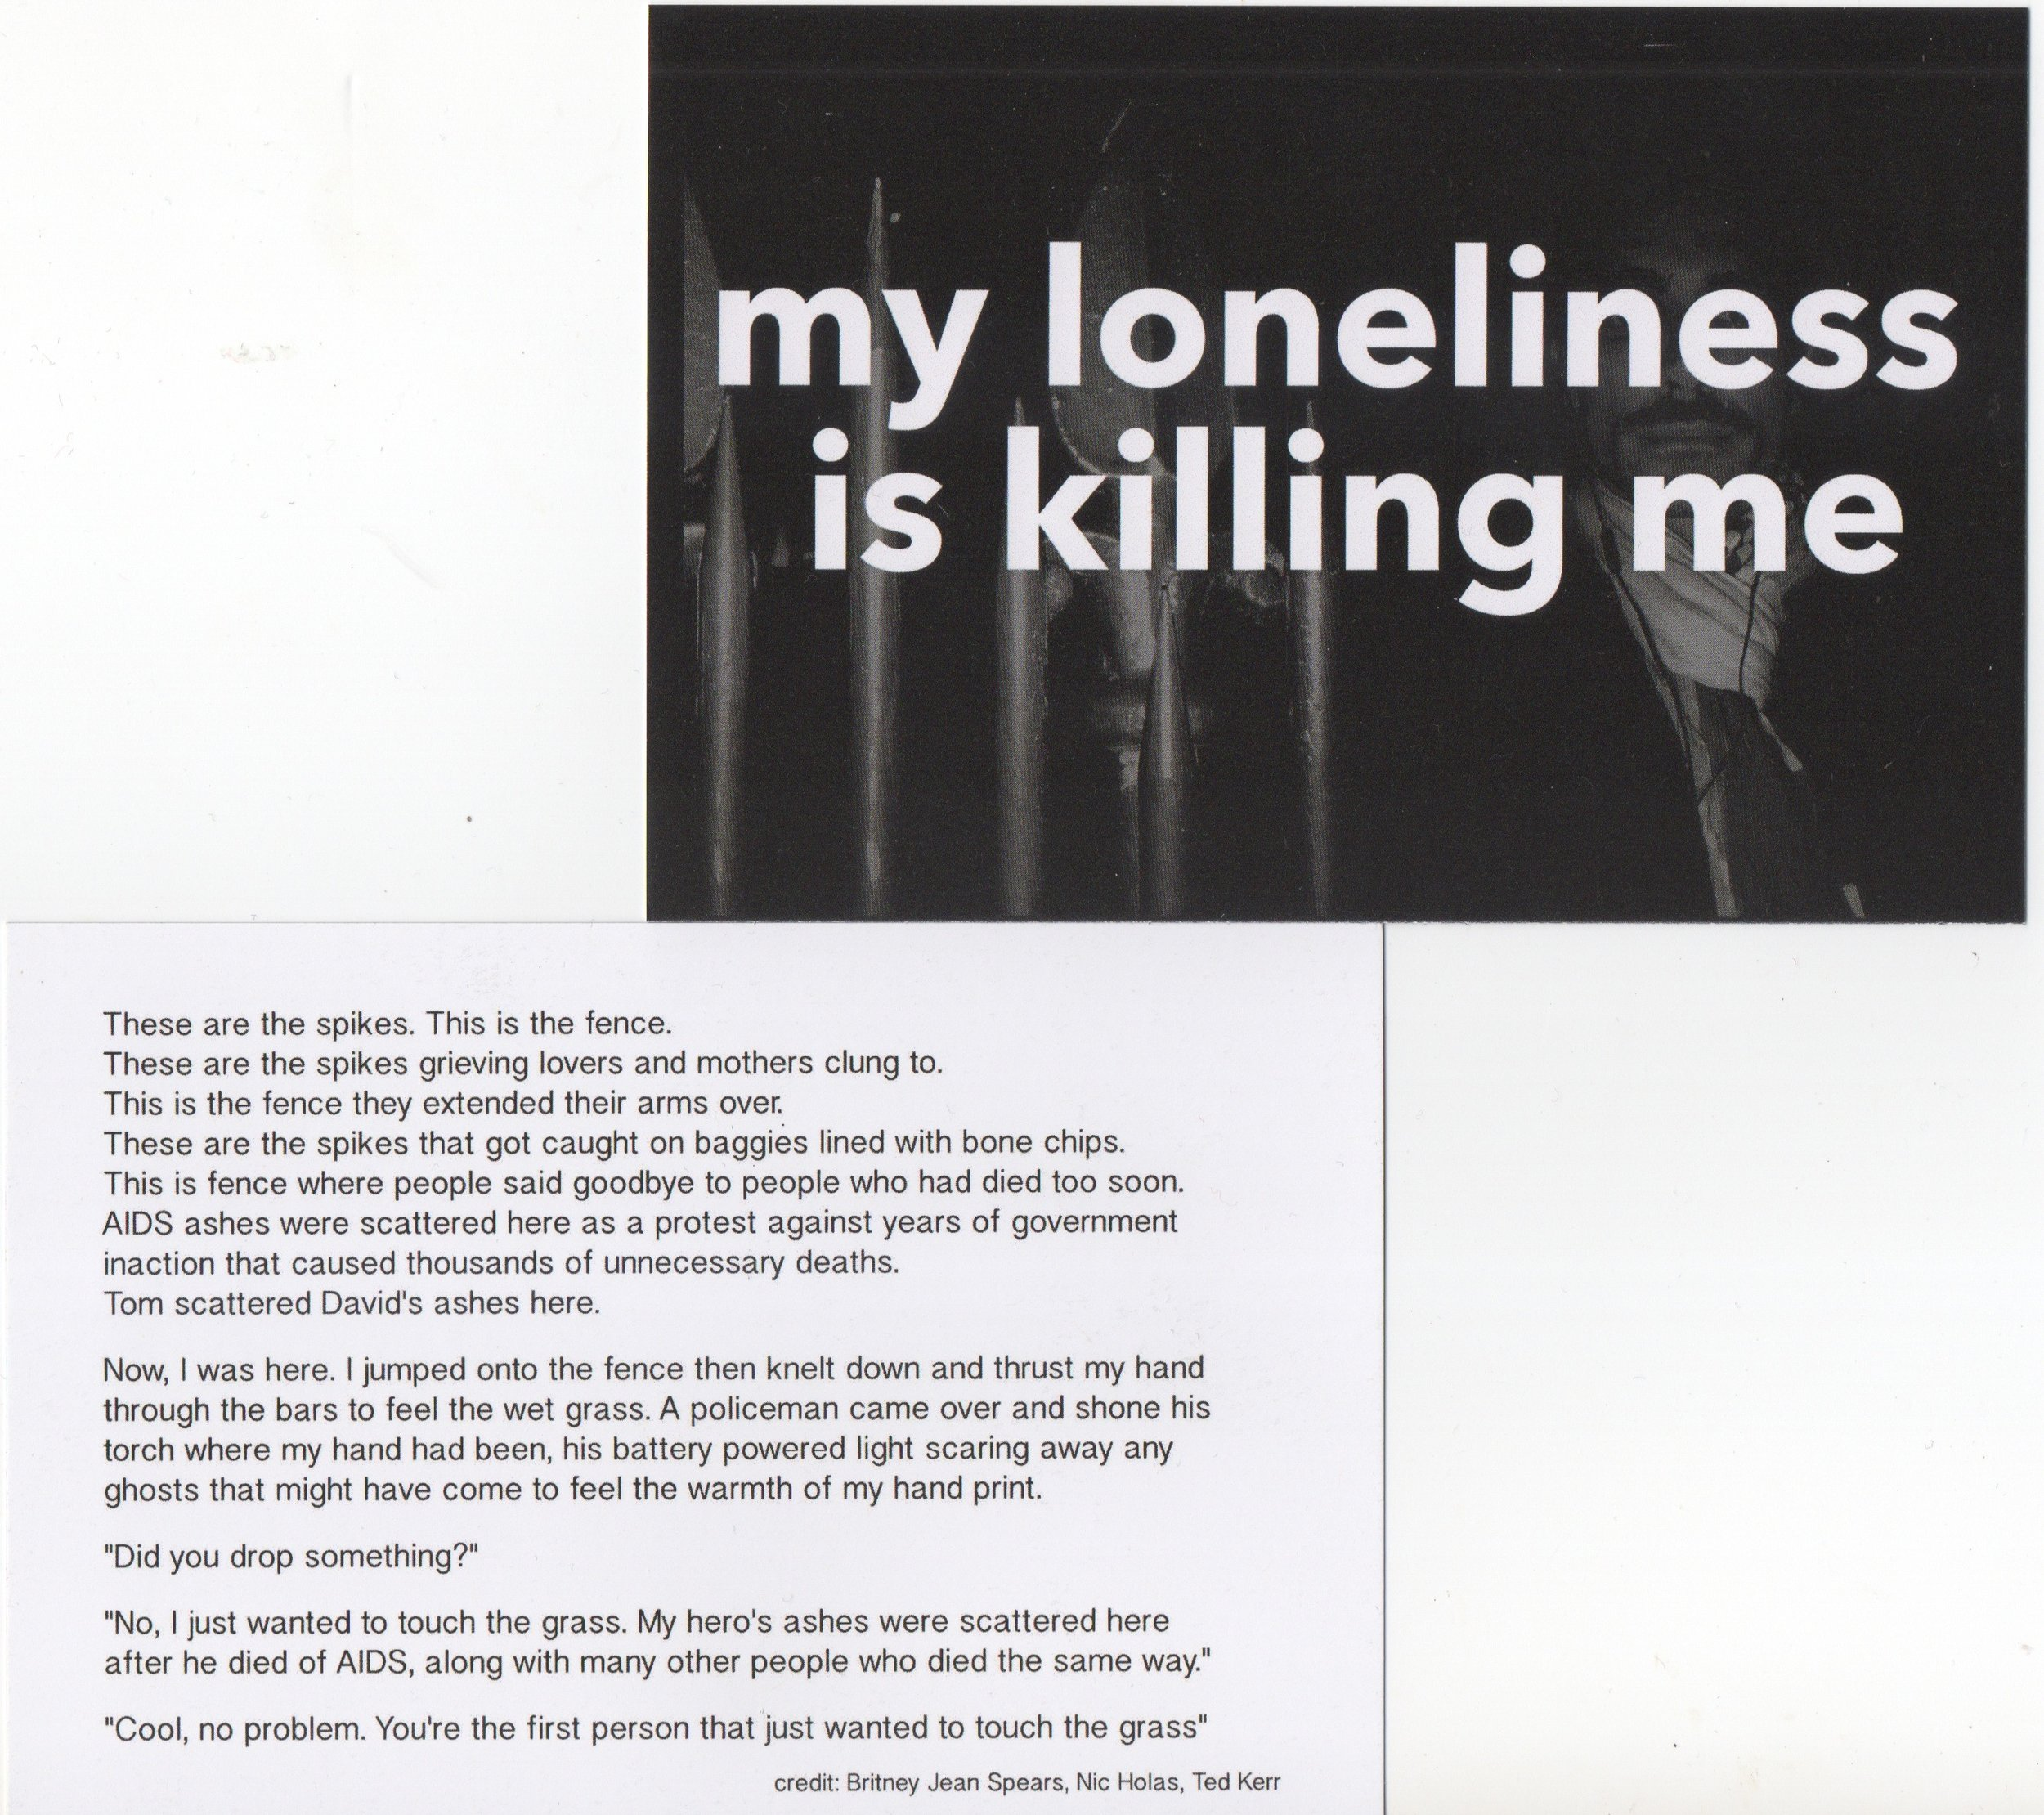 My loneliness is killing me, postcard project in collaboration with Nic Holas, 2016